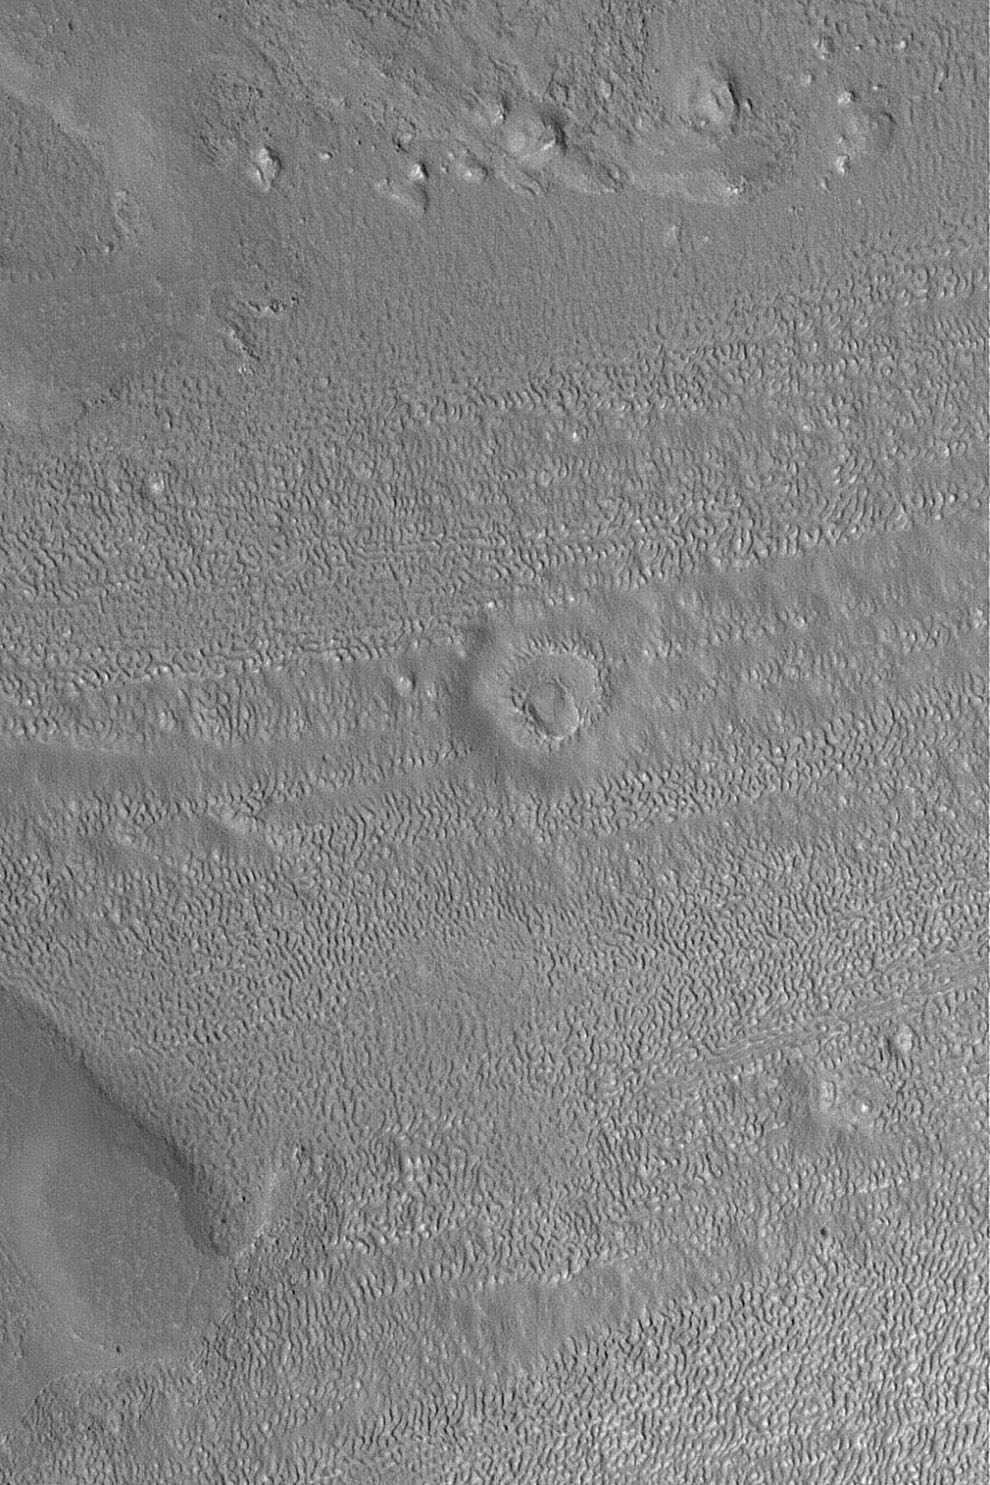 NASA's Mars Global Surveyor shows the degraded remnants of an old meteor impact crater located in the fretted terrains north of Arabia Terra on Mars.